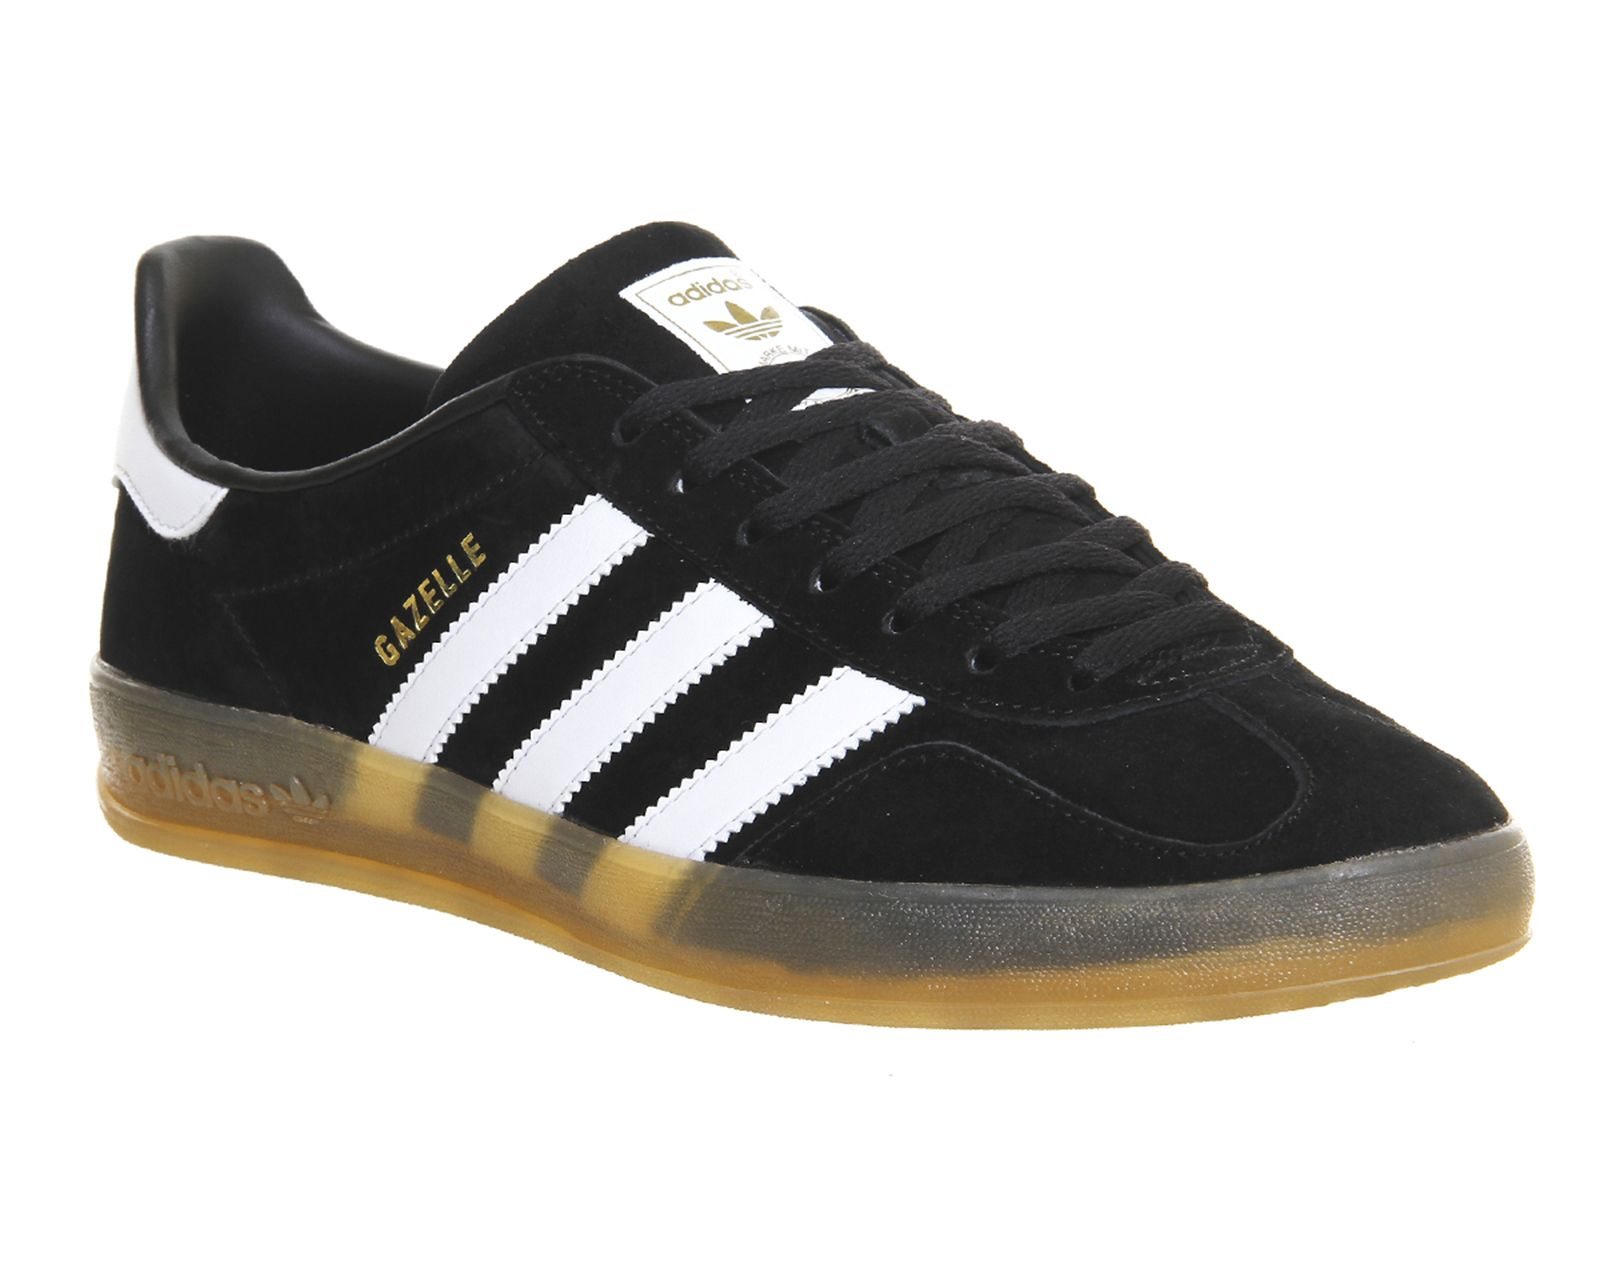 90ce4d83aa Adidas Gazelle Indoor Core Black - His trainers